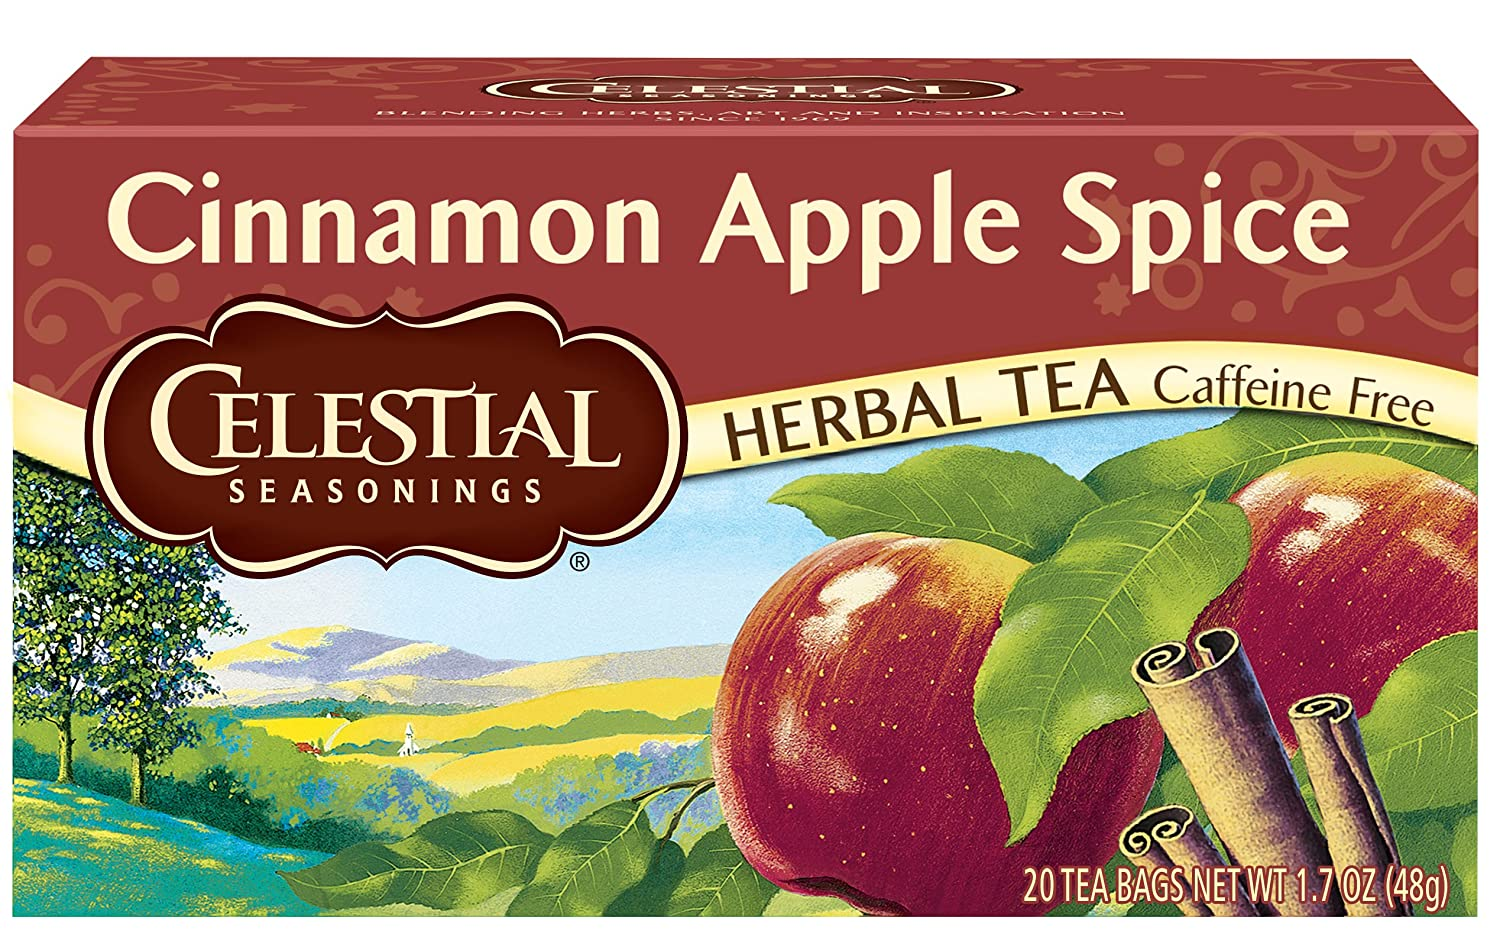 Celestial Seasonings Cinnamon Apple Spice Herbal Tea, 20 ct